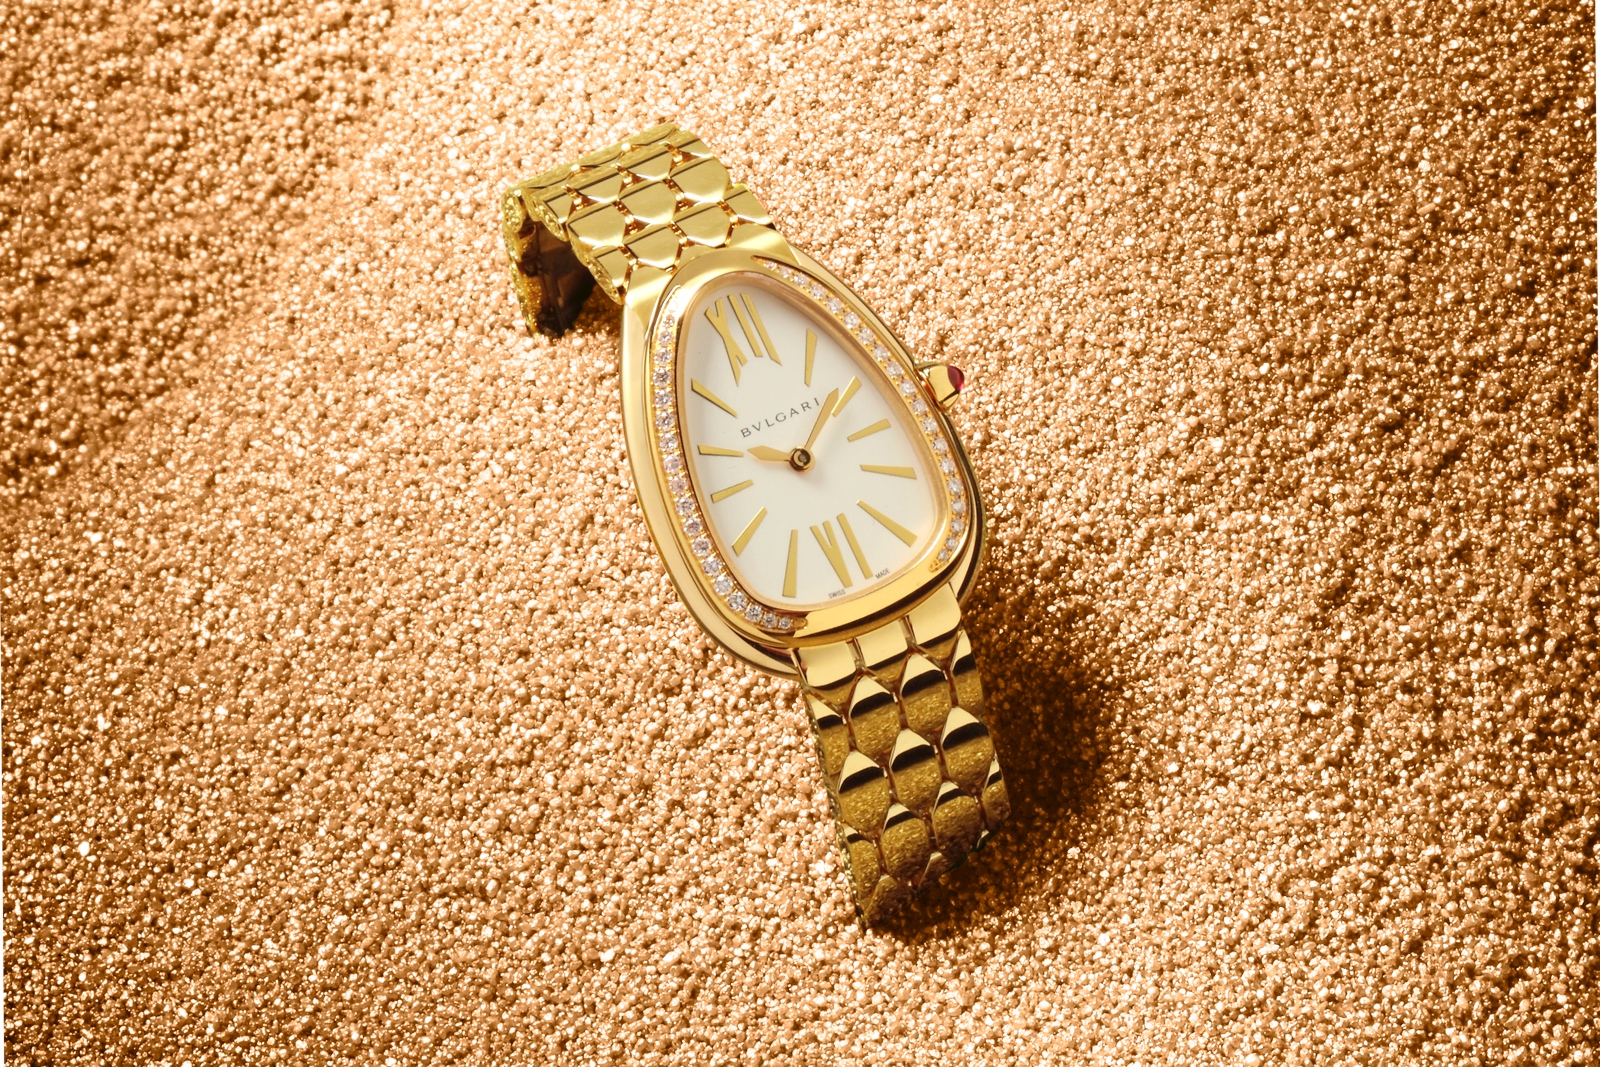 Bulgari en Baselworld 2019 - Serpenti Seduttori yellow gold diamonds